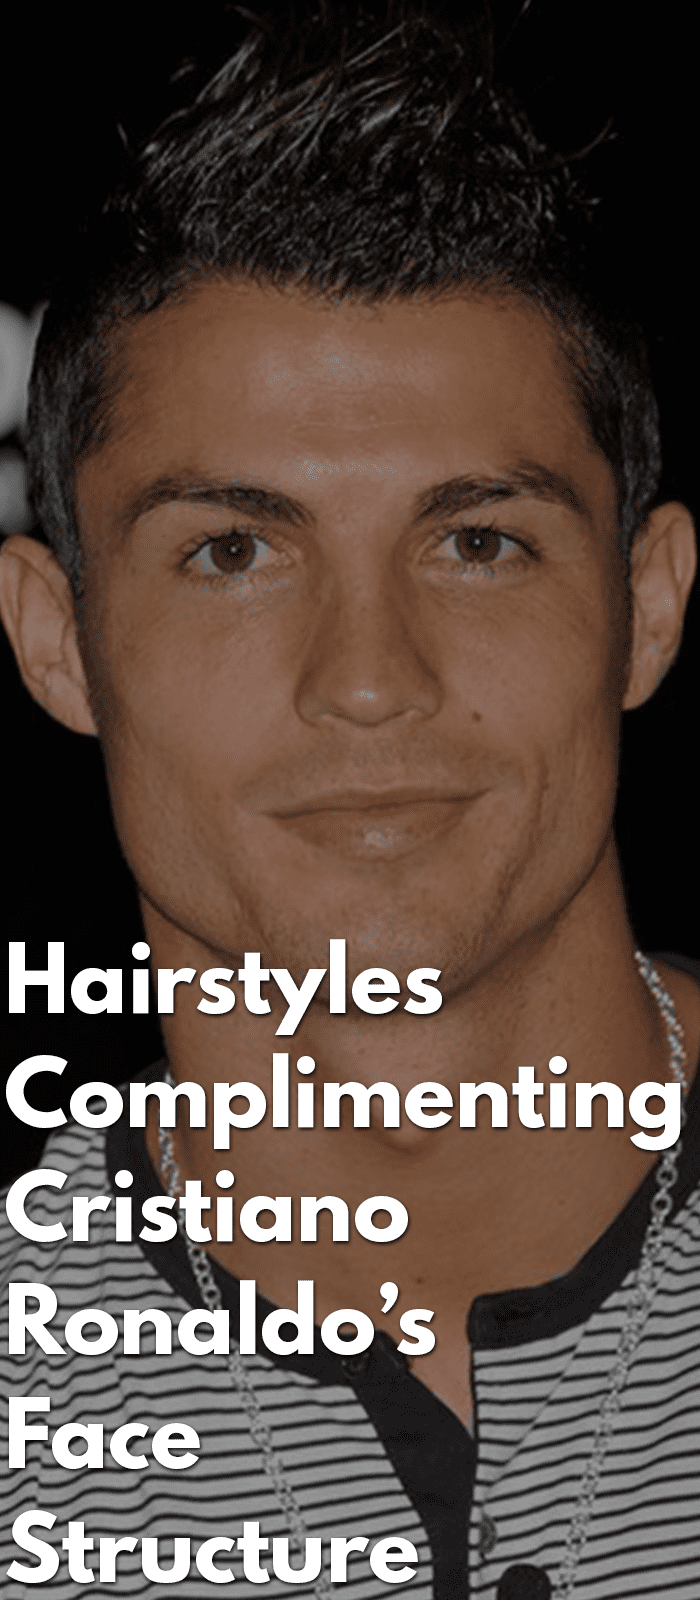 Hairstyles-Complimenting-Cristiano-Ronaldo's-Face-Structure.